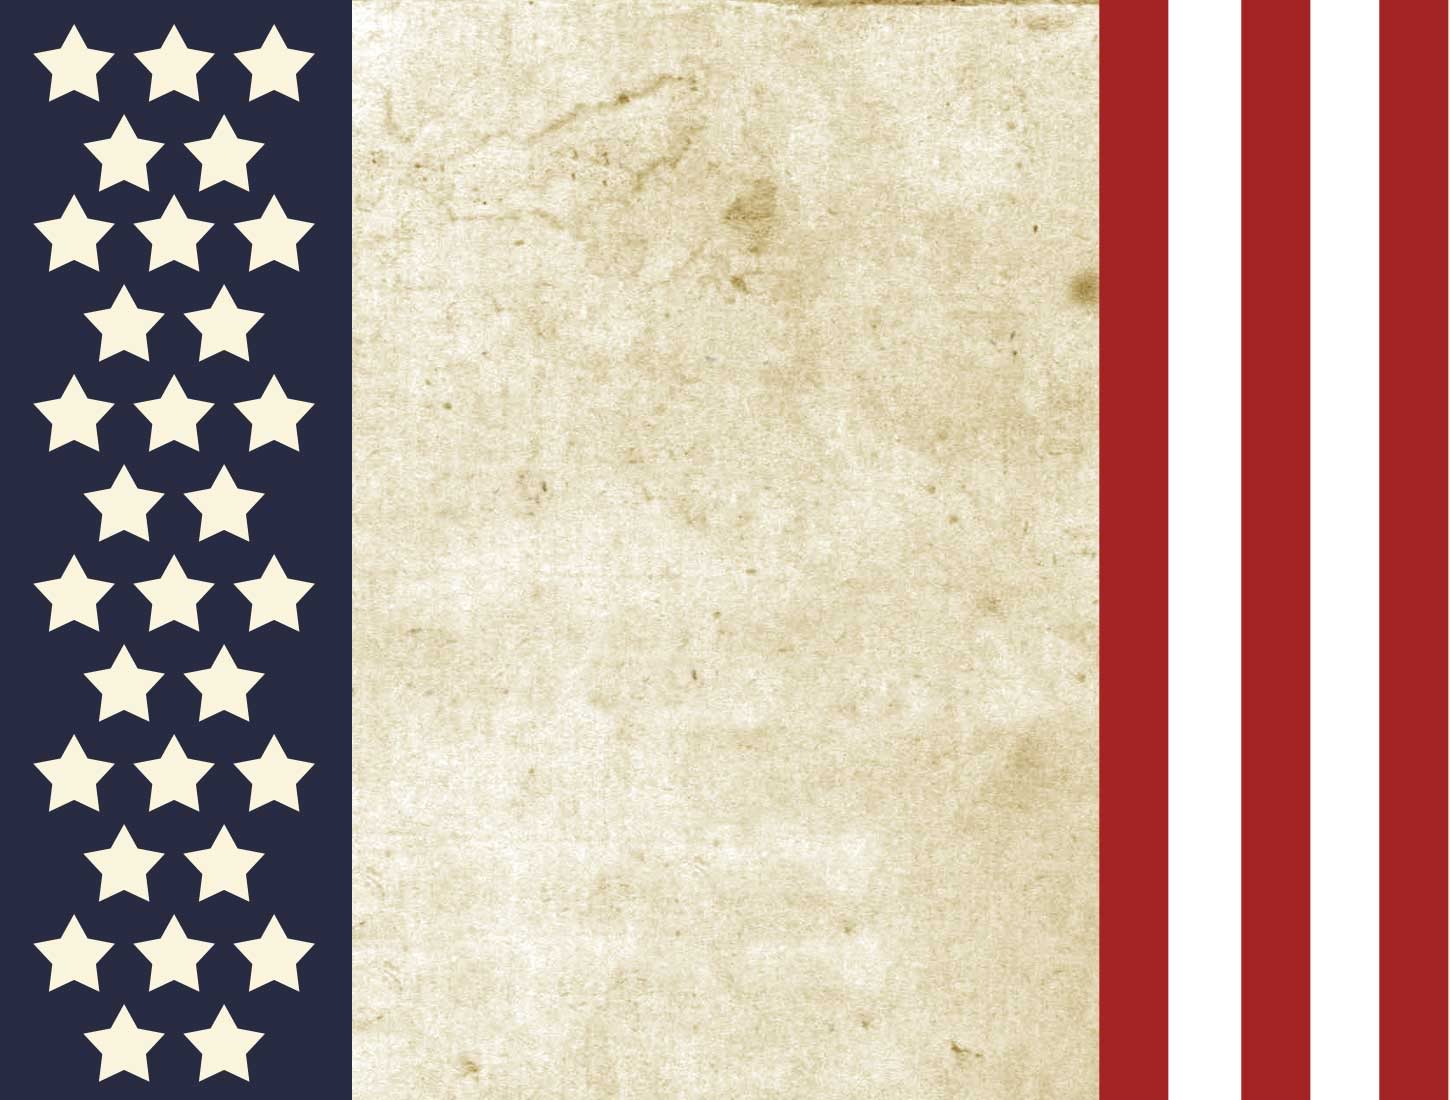 patriotic american flag Backgrounds for PowerPoint Templates 1450x1100